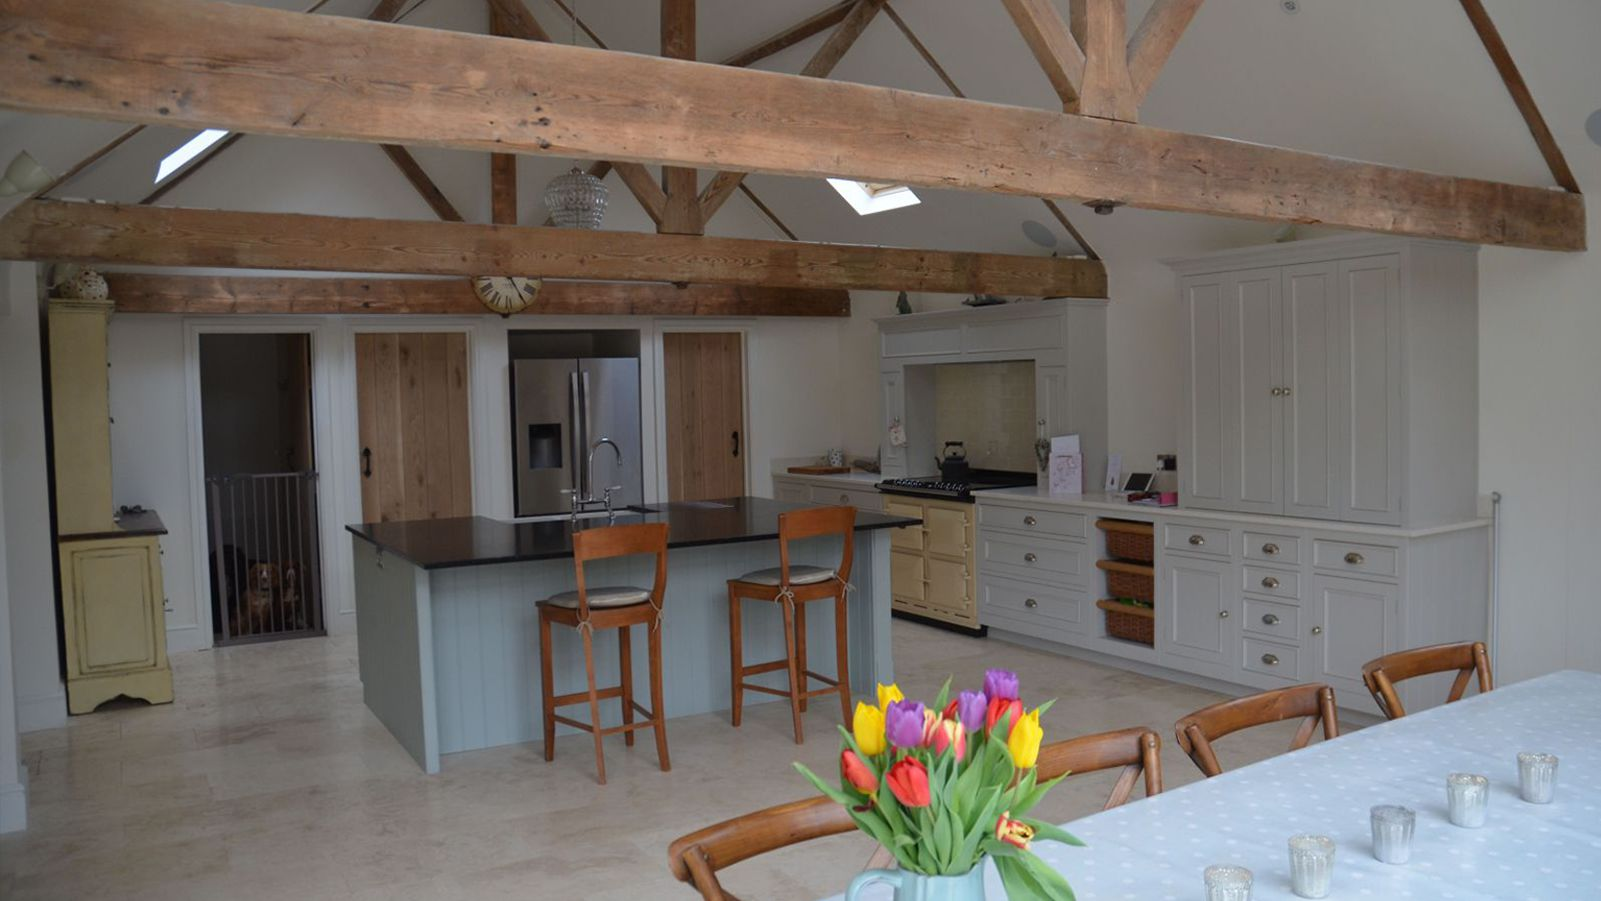 2011-ASP-Murphy-Projects-Thruxton-Interior-listed-barn-beams-